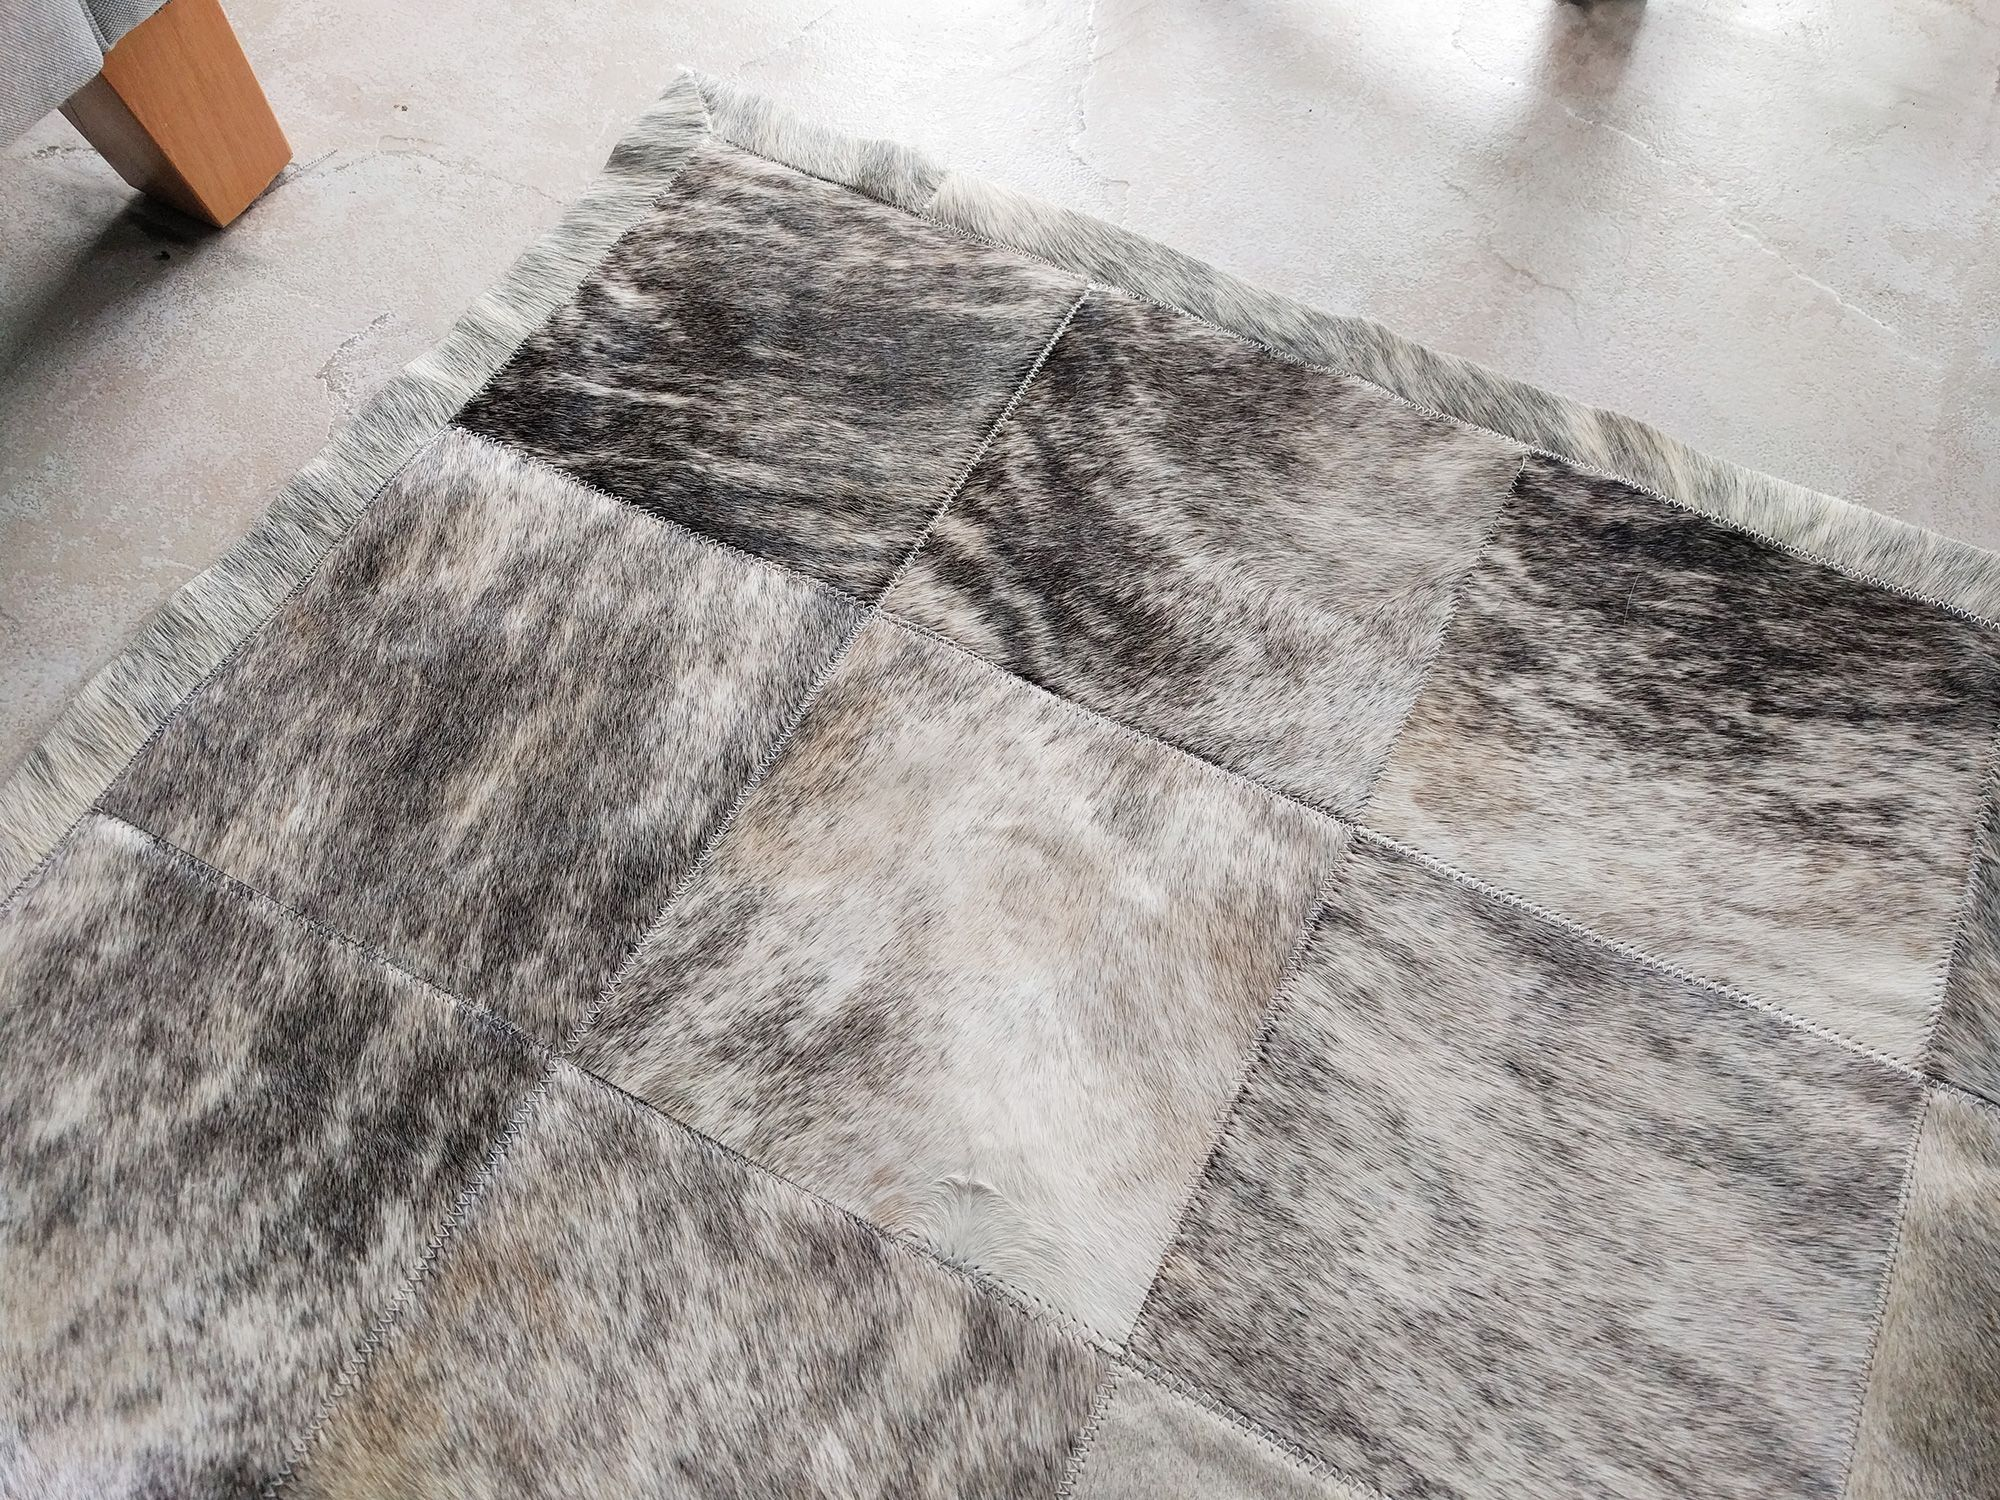 Gray Brindle Cowhide Patchwork Rug Brindle Hides Are Super Special They Always Create The Perfect Patchwork Cowhide Rug Patchwork Cowhide Cowhide Patch Rug